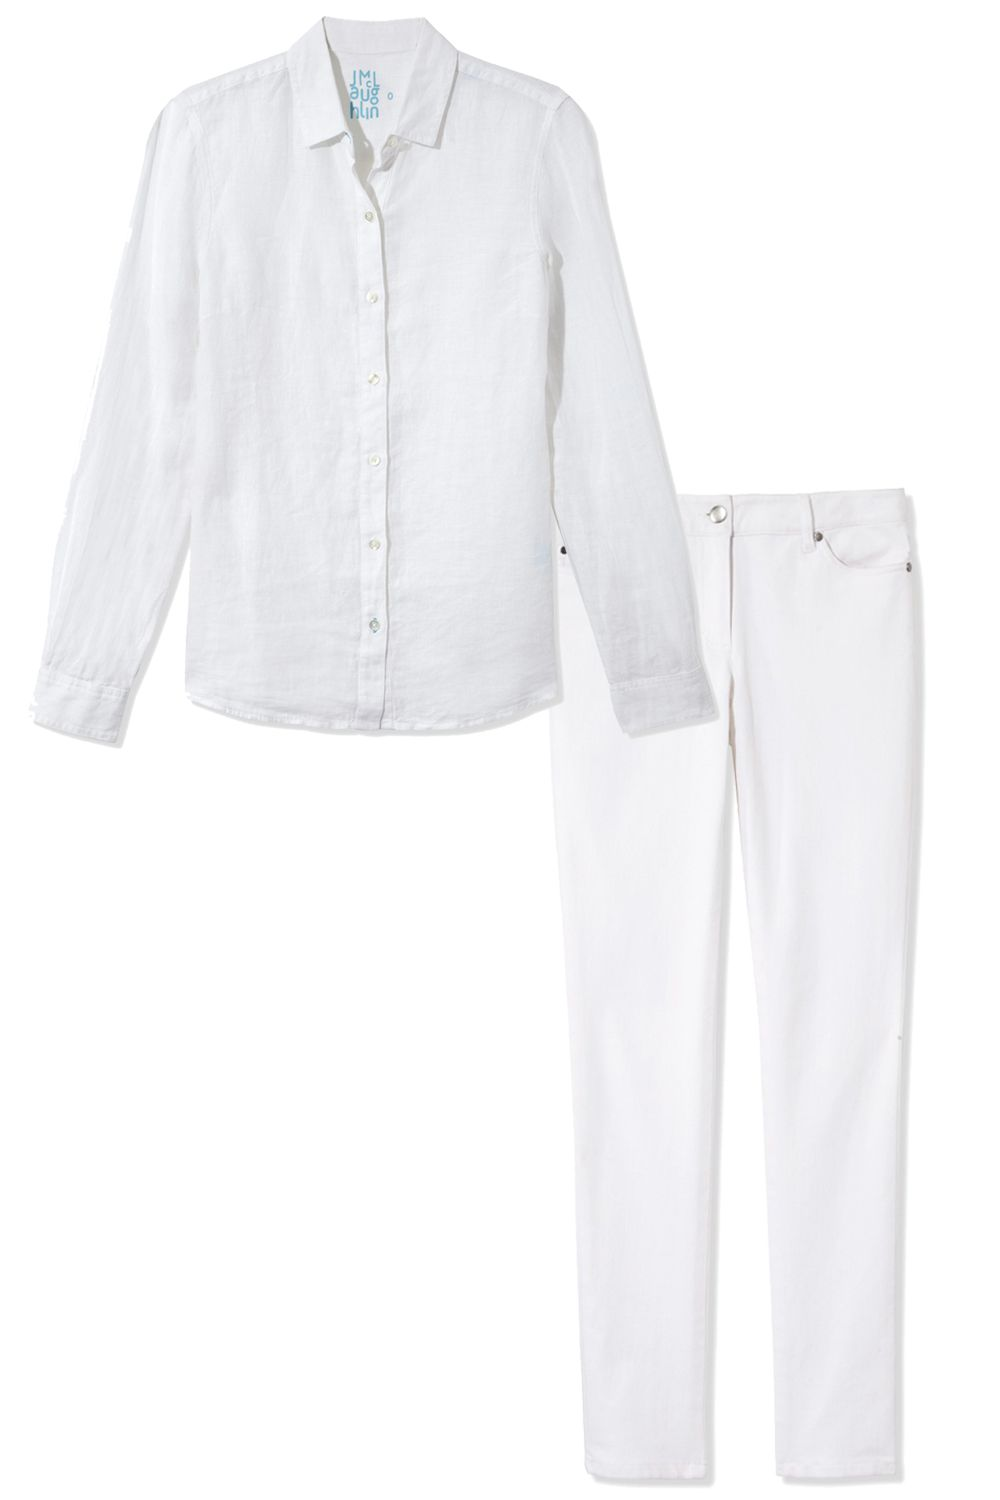 "<p><em>J.McLaughlin top, $168, <a target=""_blank"" href=""http://shop.harpersbazaar.com/designers/j-mclaughlin/savannah-linen-shirt/"">shopBAZAAR.com</a>; J.McLaughlin jeans, $155, <a target=""_blank"" href=""http://shop.harpersbazaar.com/designers/j-mclaughlin/lexi-knit-jean/"">shopBAZAAR.com</a></em></p>"